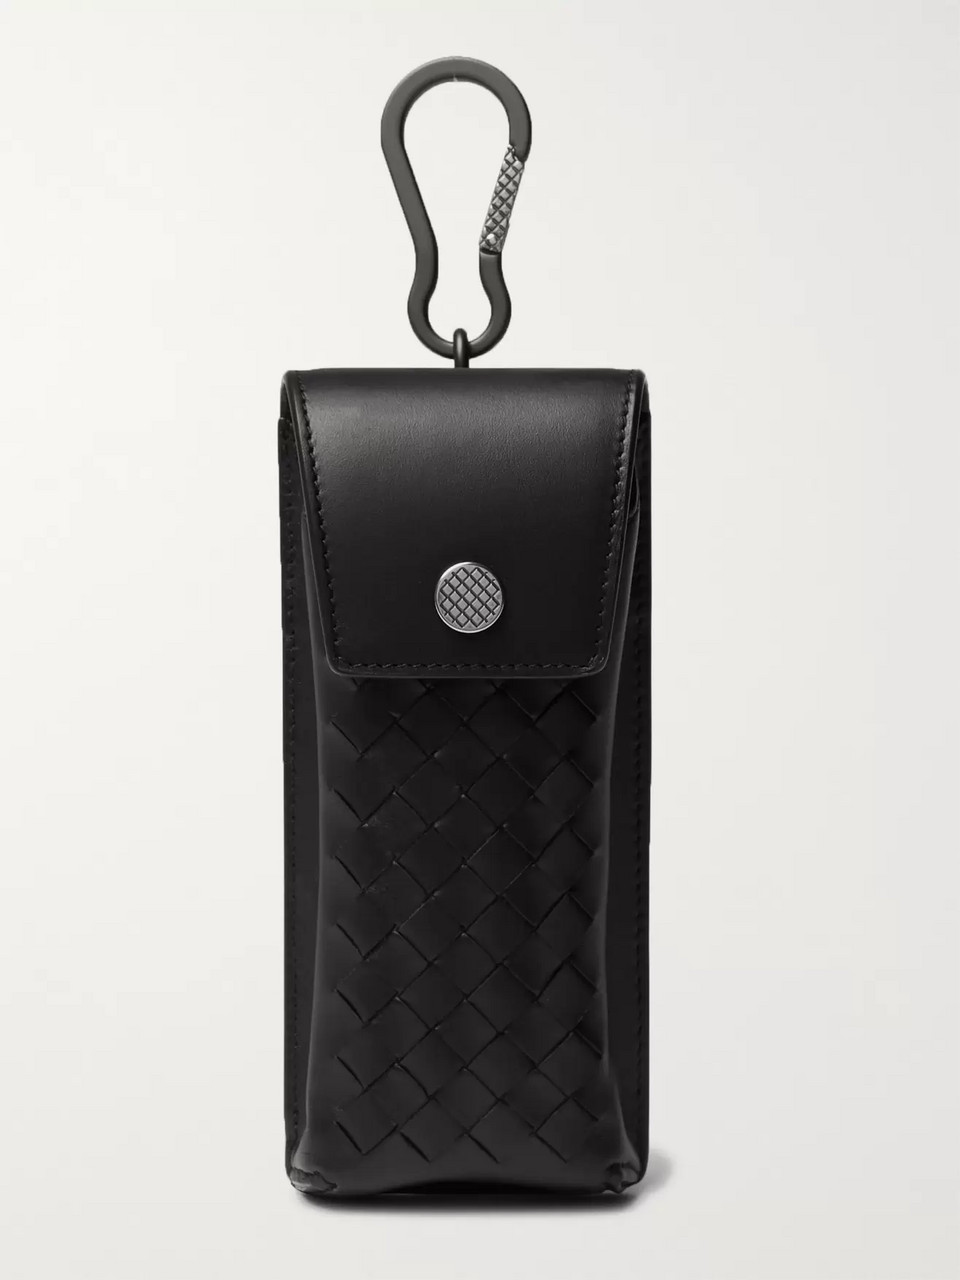 Bottega Veneta Intrecciato Leather Sunglasses Case